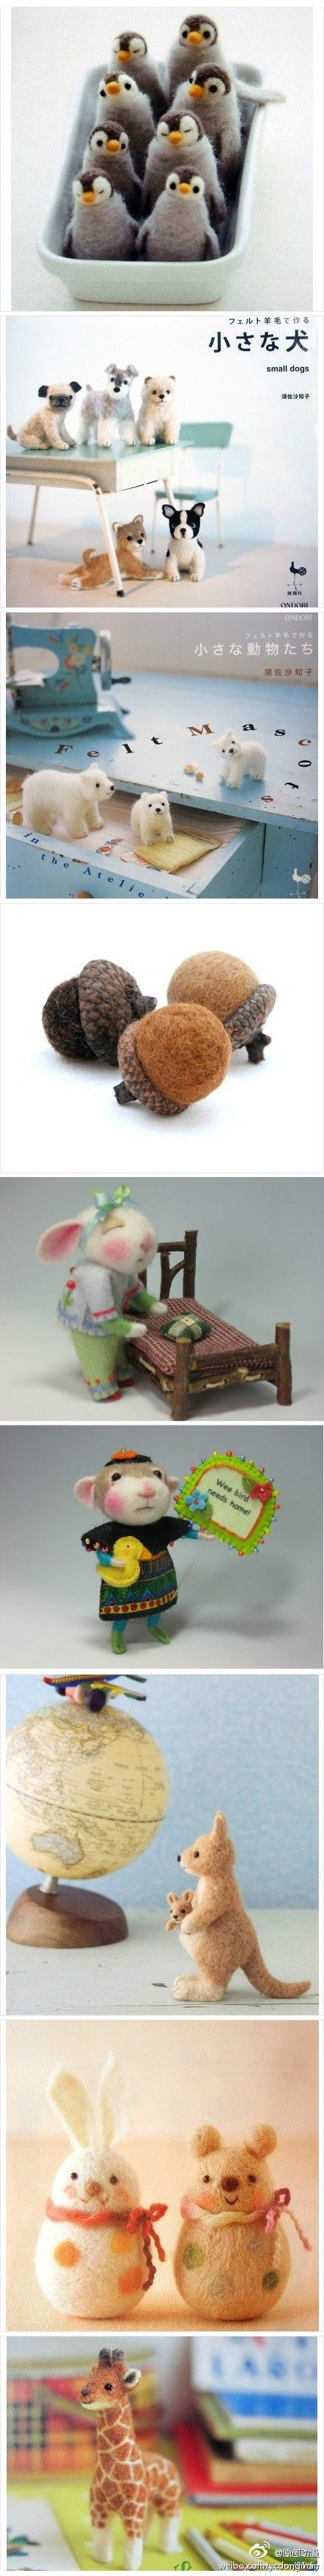 Many needle felted animals.                                                                                                                                                     More